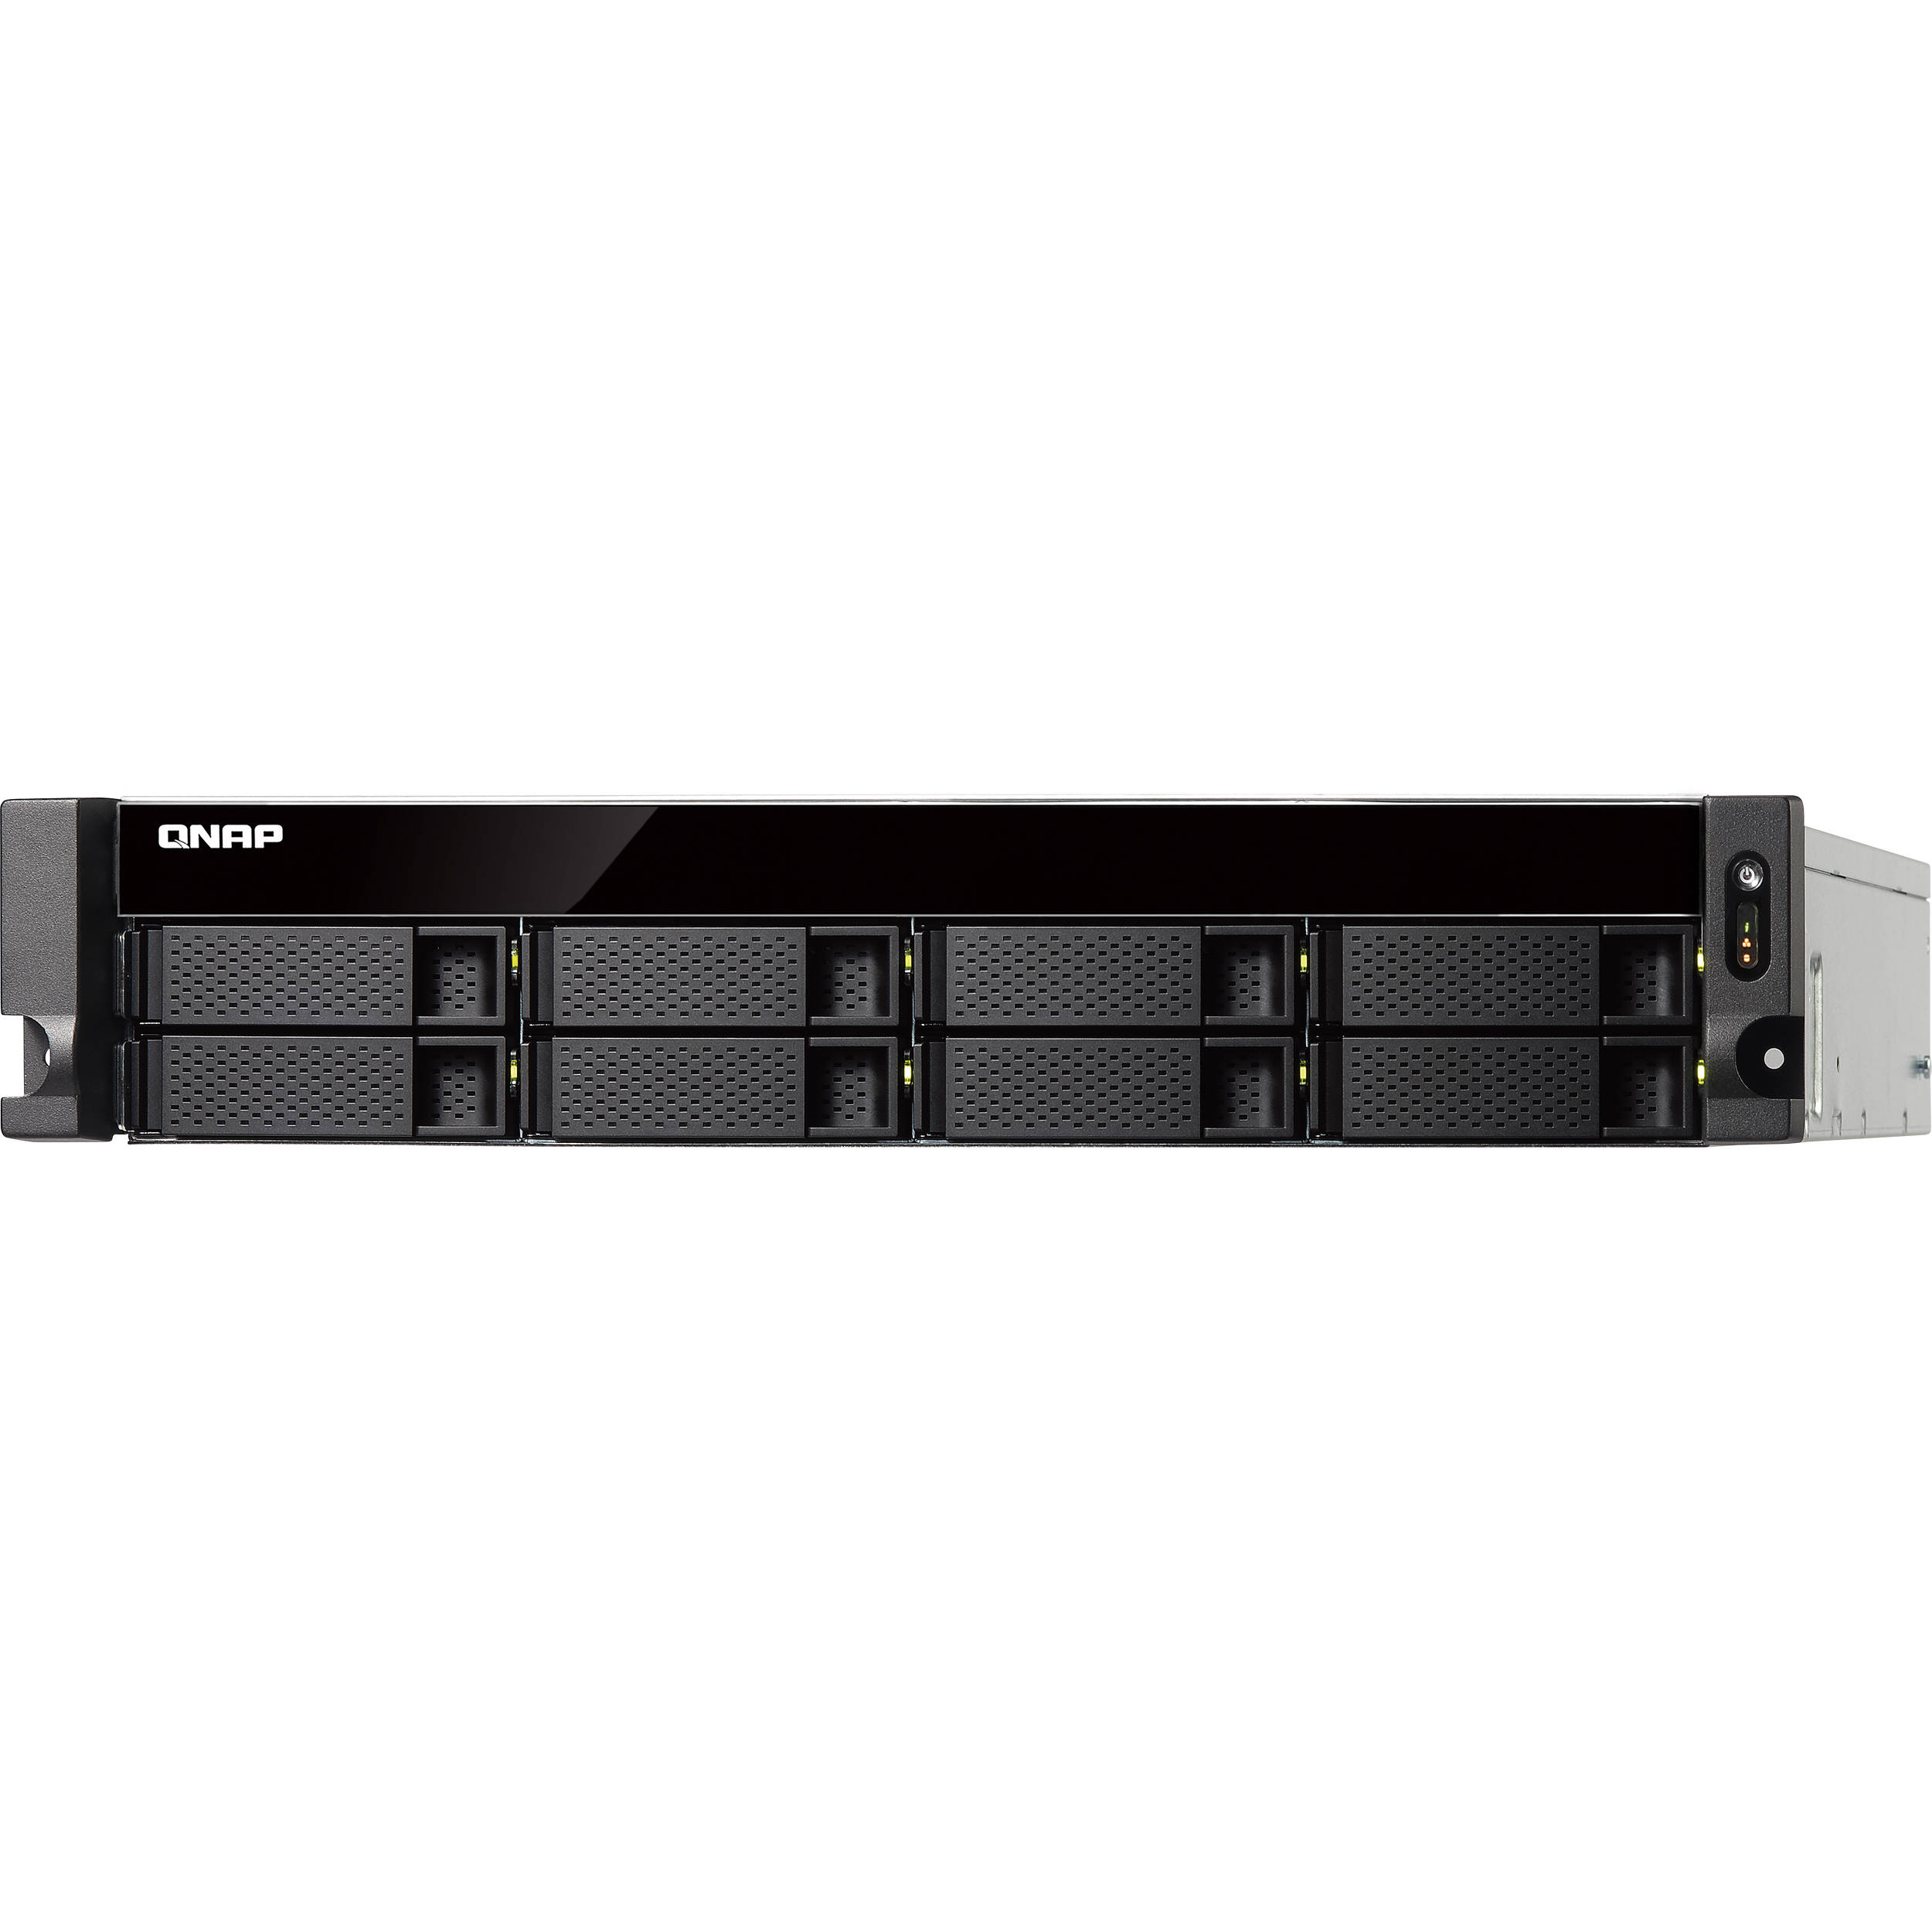 QNAP TS-831XU-RP 8-Bay NAS Enclosure with Redundant Power Supply